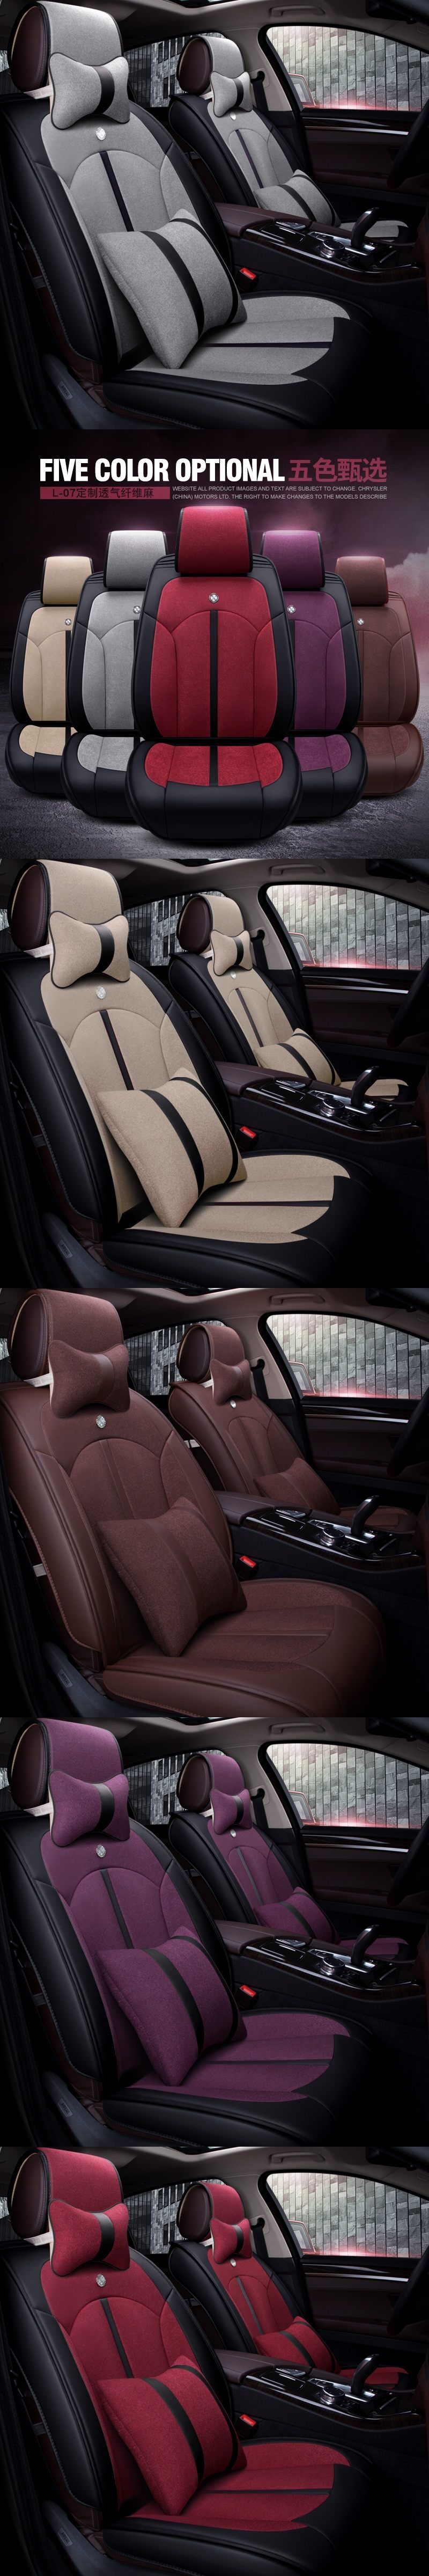 New 5D Car Seat Cover,Universal Seat Cushion,Senior Leather,flax Car Pad